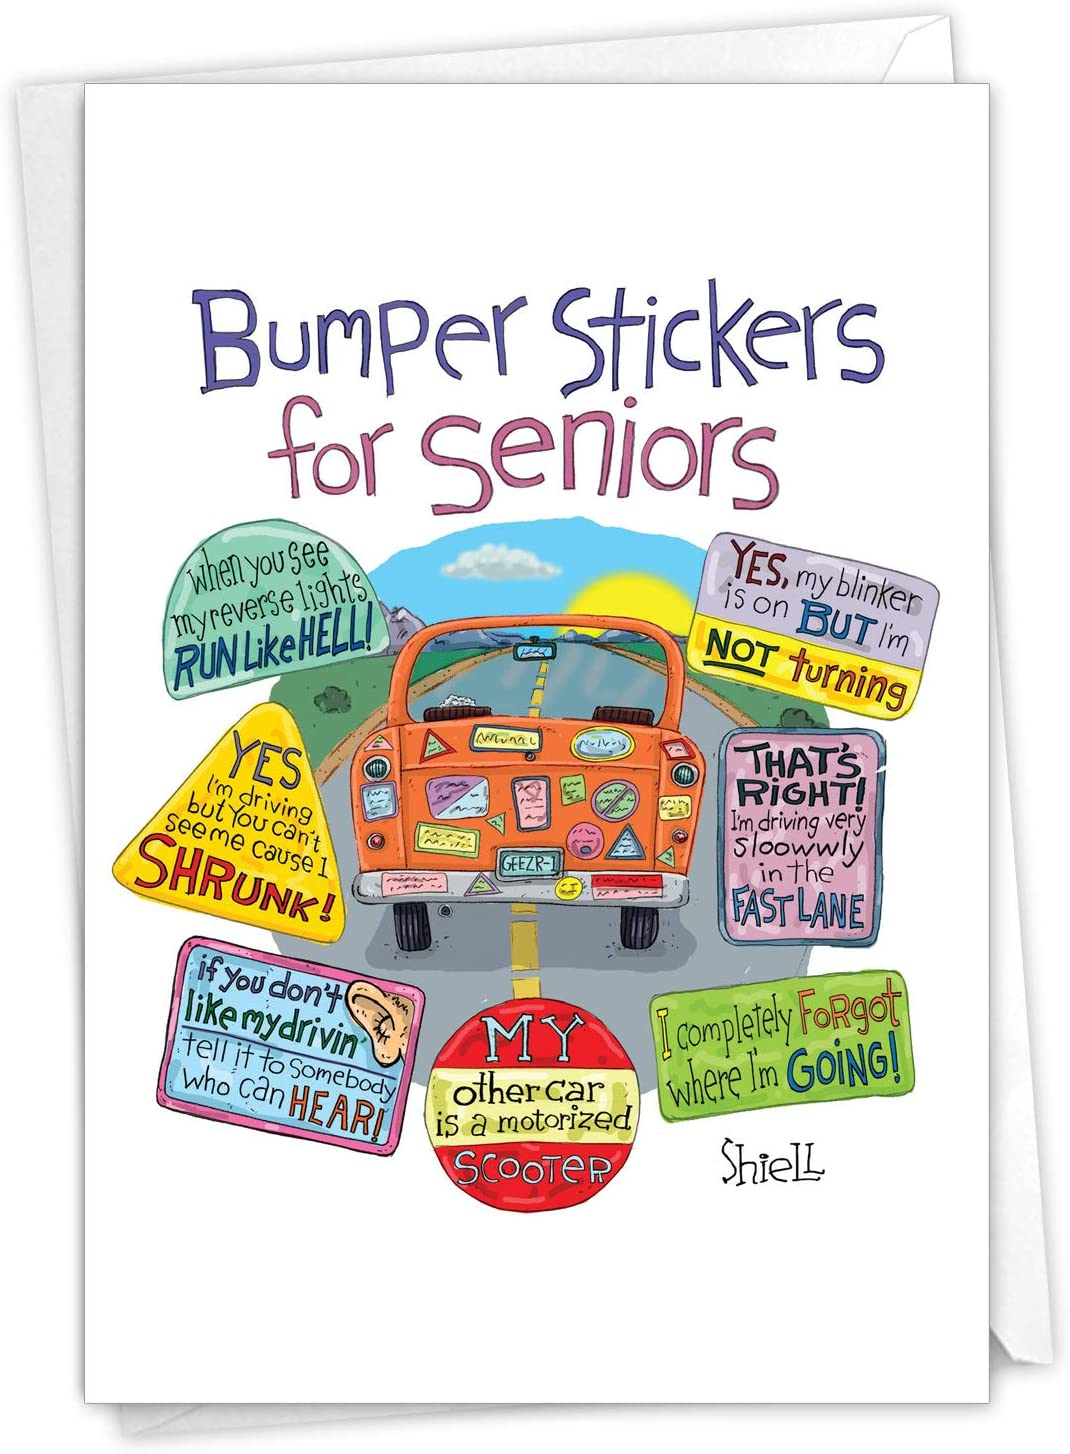 Amazon Com Senior Bumper Stickers Funny Birthday Card Featuring Hilarious Stickers Of Elderly Drivers Actions With Envelope C2649bdg Office Products